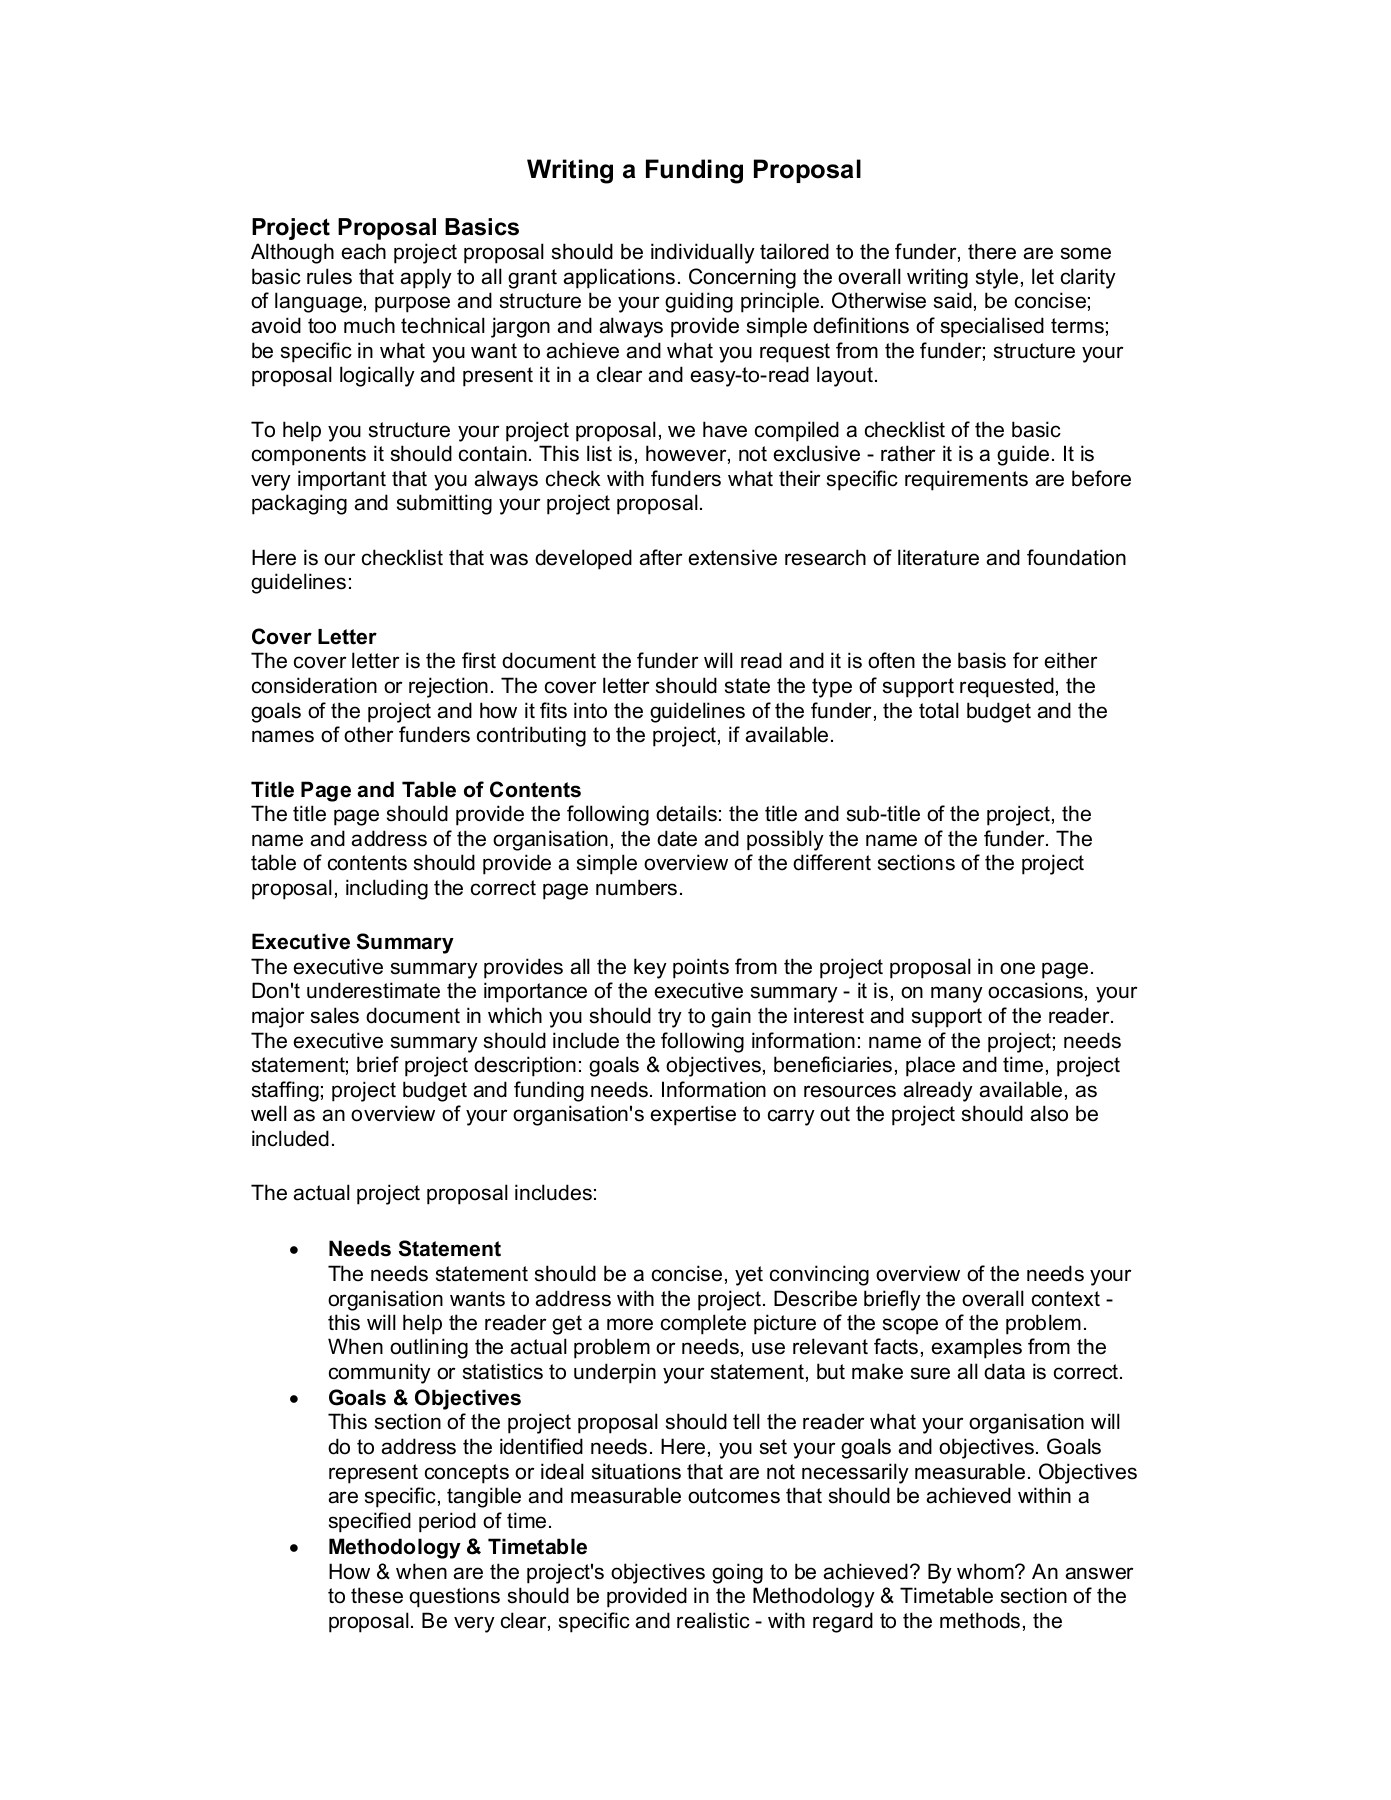 Writing A Funding Proposal Pages 1 2 Text Version